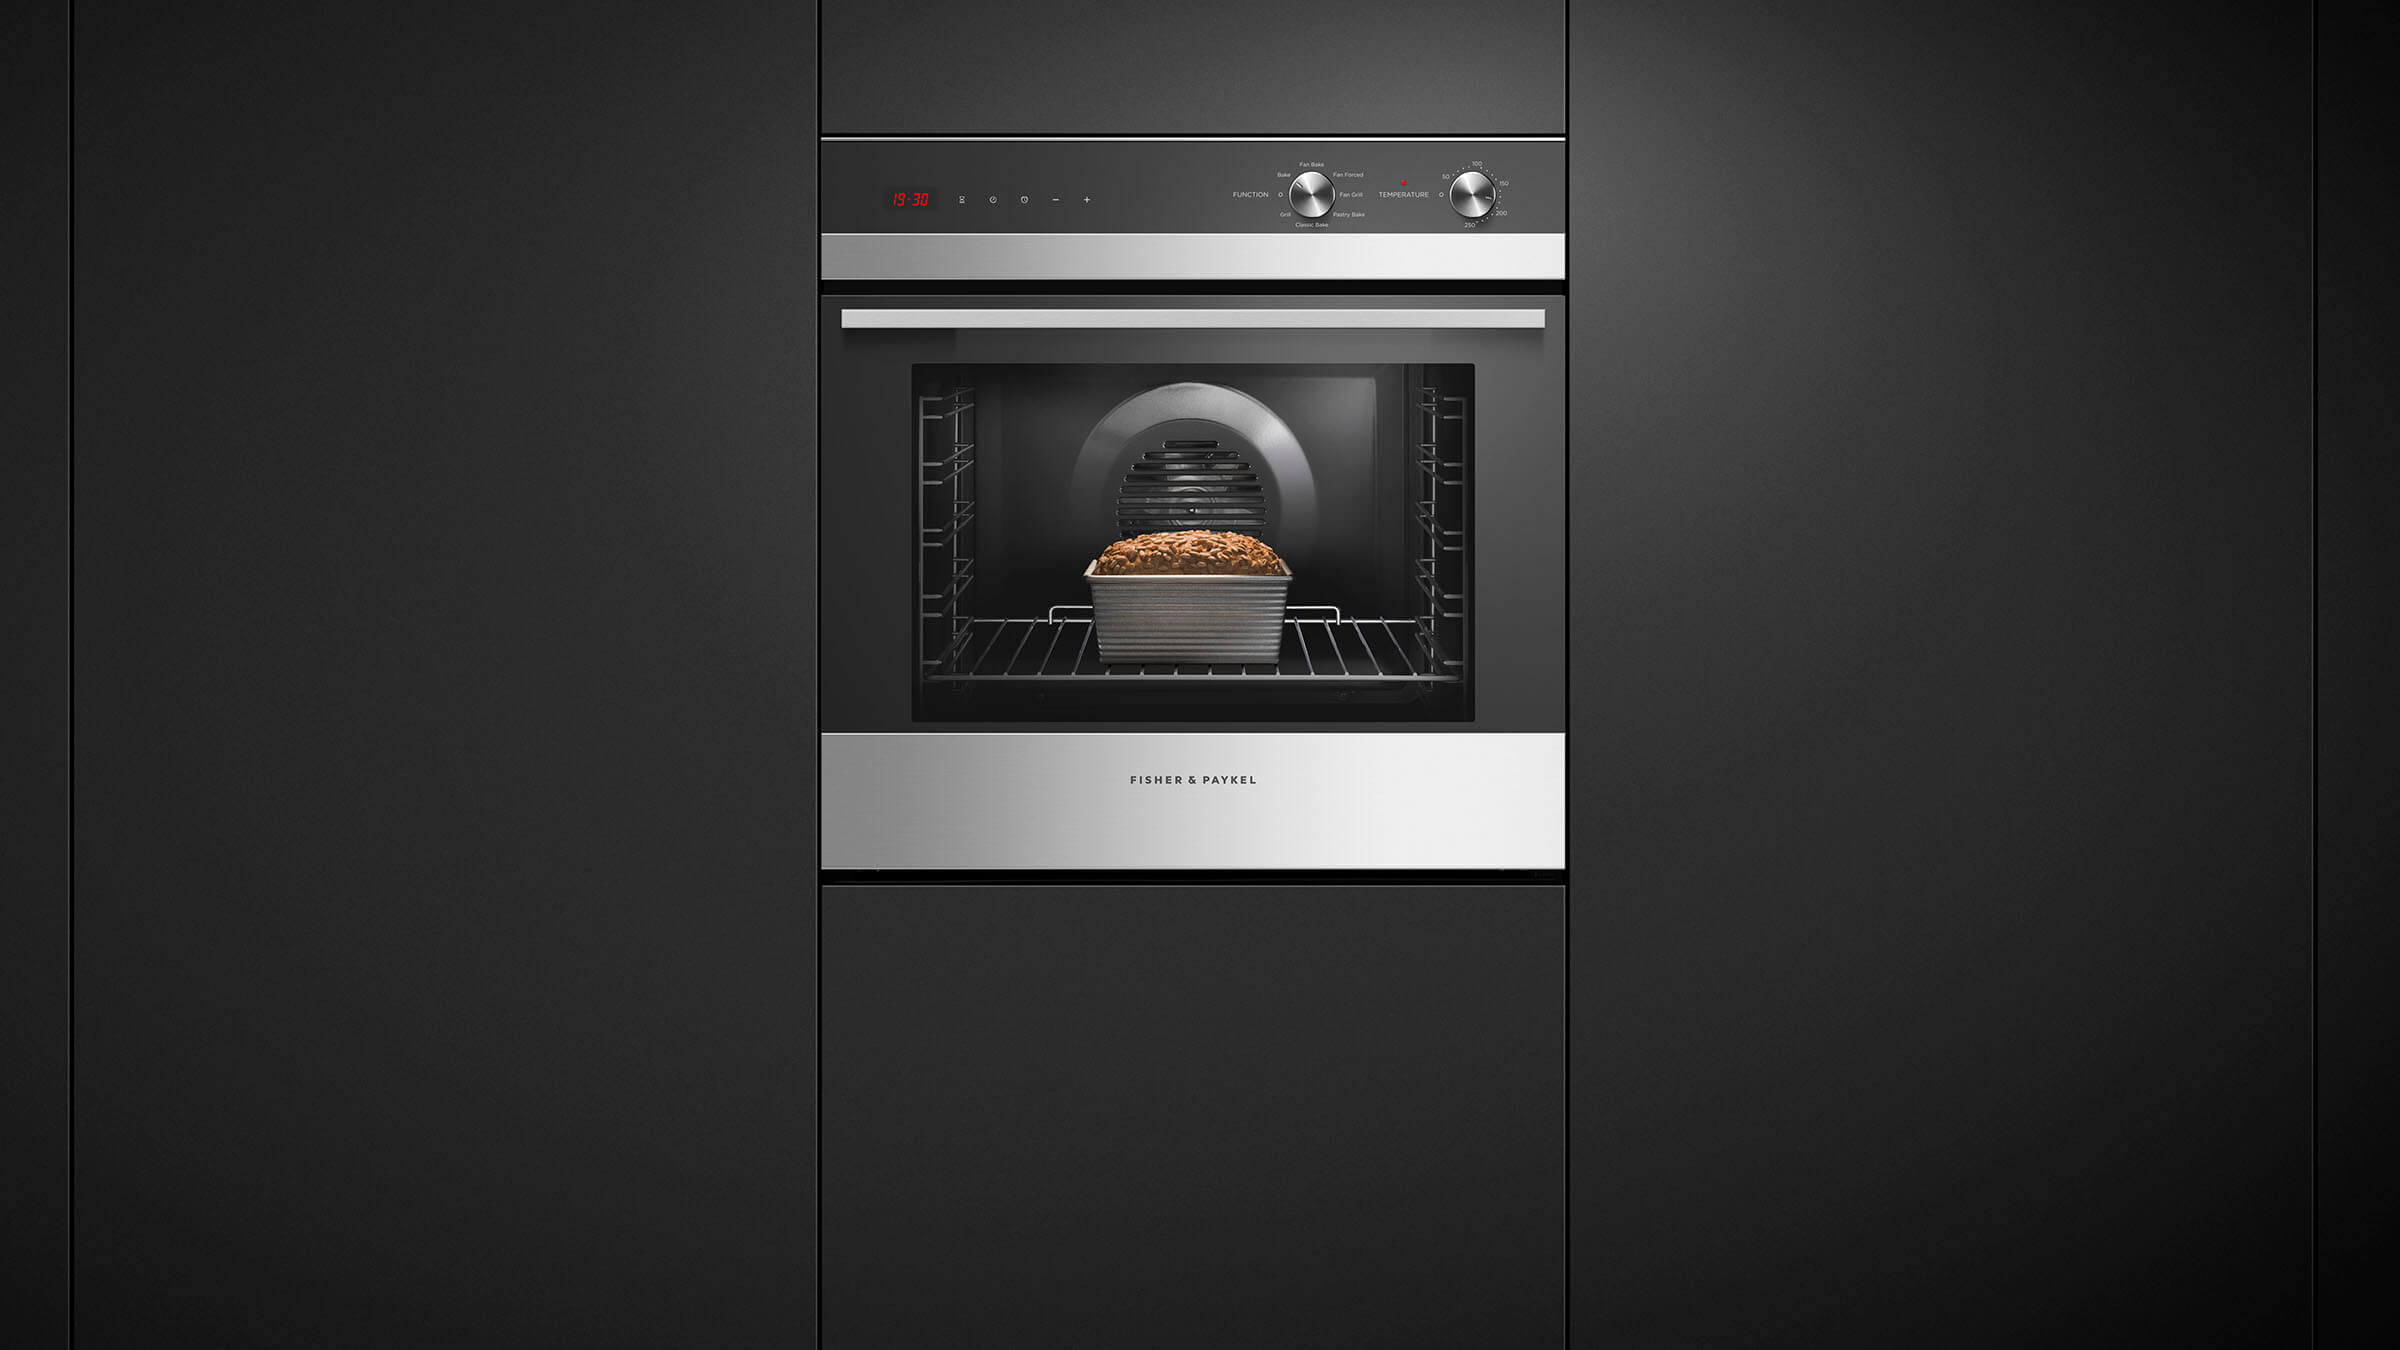 Fisher And Paykel Saffron Manual. Ob60sc7cex1 Fisher And Paykel Function Single Built In Oven Rh Fisherpaykel Refrigerator Rf170blpxn Saffron. Fisher. Fisher And Paykel Dishwasher Diagram At Scoala.co